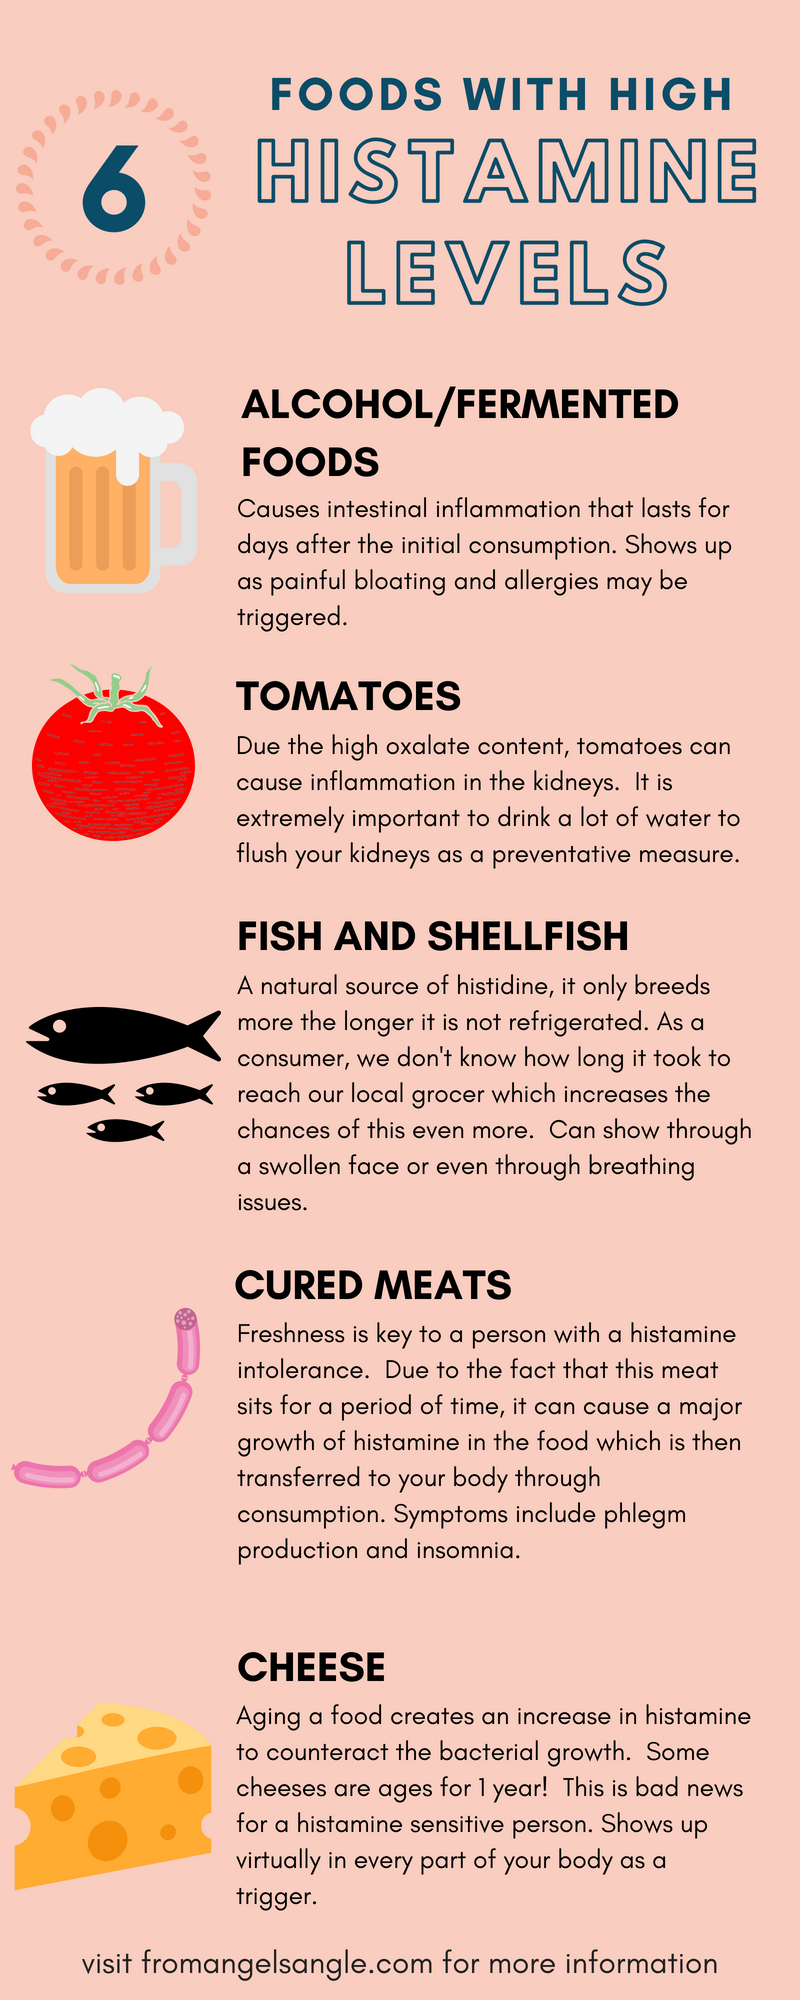 Infographic of foods with high histamine